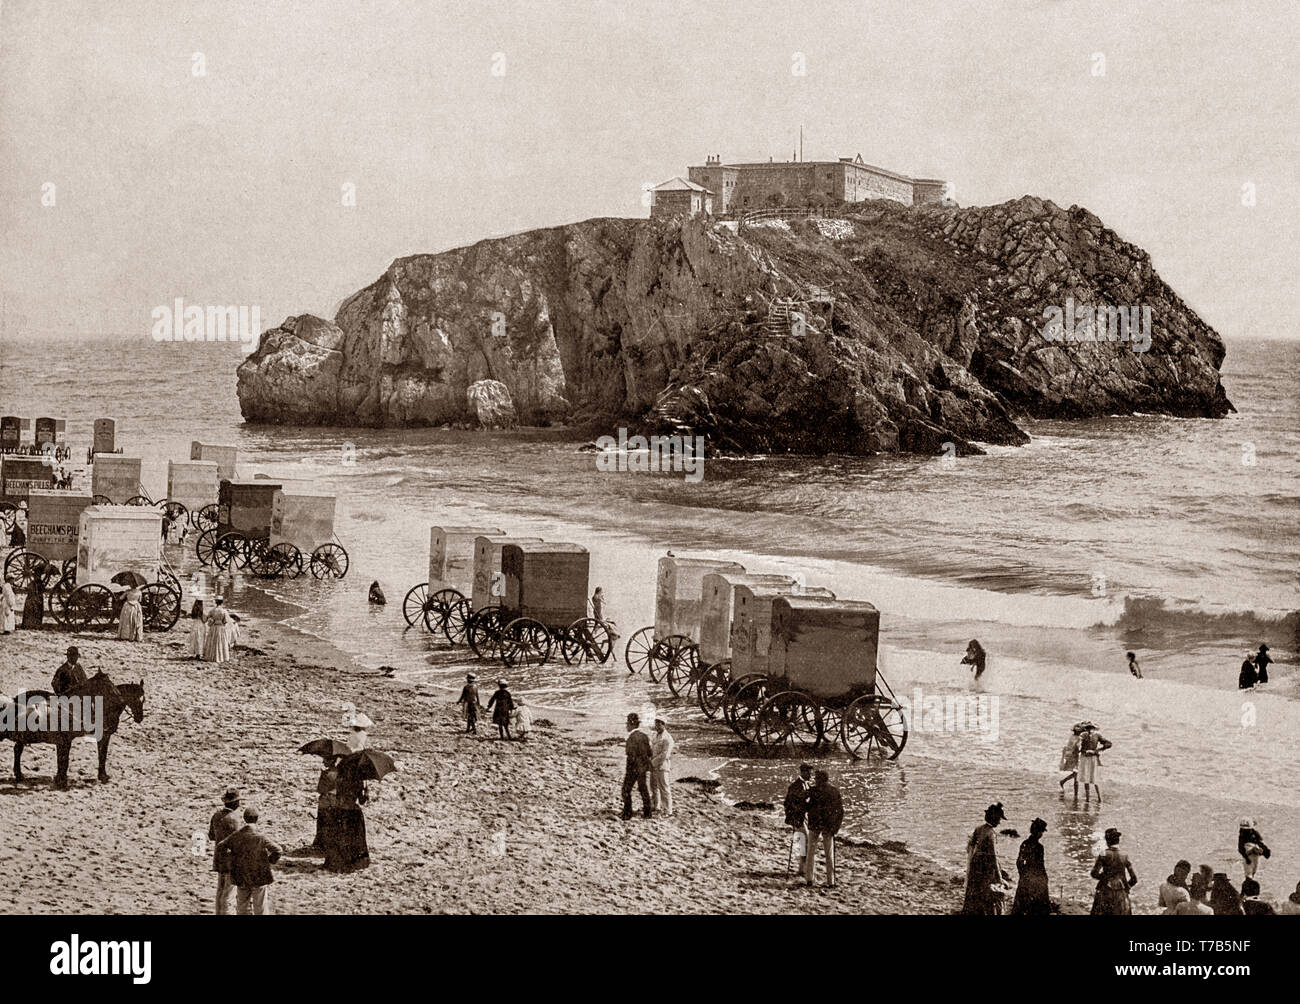 A late 19th Century view of the Palmerston Fort on St Catherine's Island just off Tenby, a walled seaside town in Pembrokeshire, Wales, on the western side of Carmarthen Bay. The town's fortunes rose when a local resident, merchant banker and politician, Sir William Paxton invested heavily in the area. With the growth in saltwater sea-bathing for health purposes, Paxton went on to create a 'fashionable bathing establishment suitable for the highest society. - Stock Image